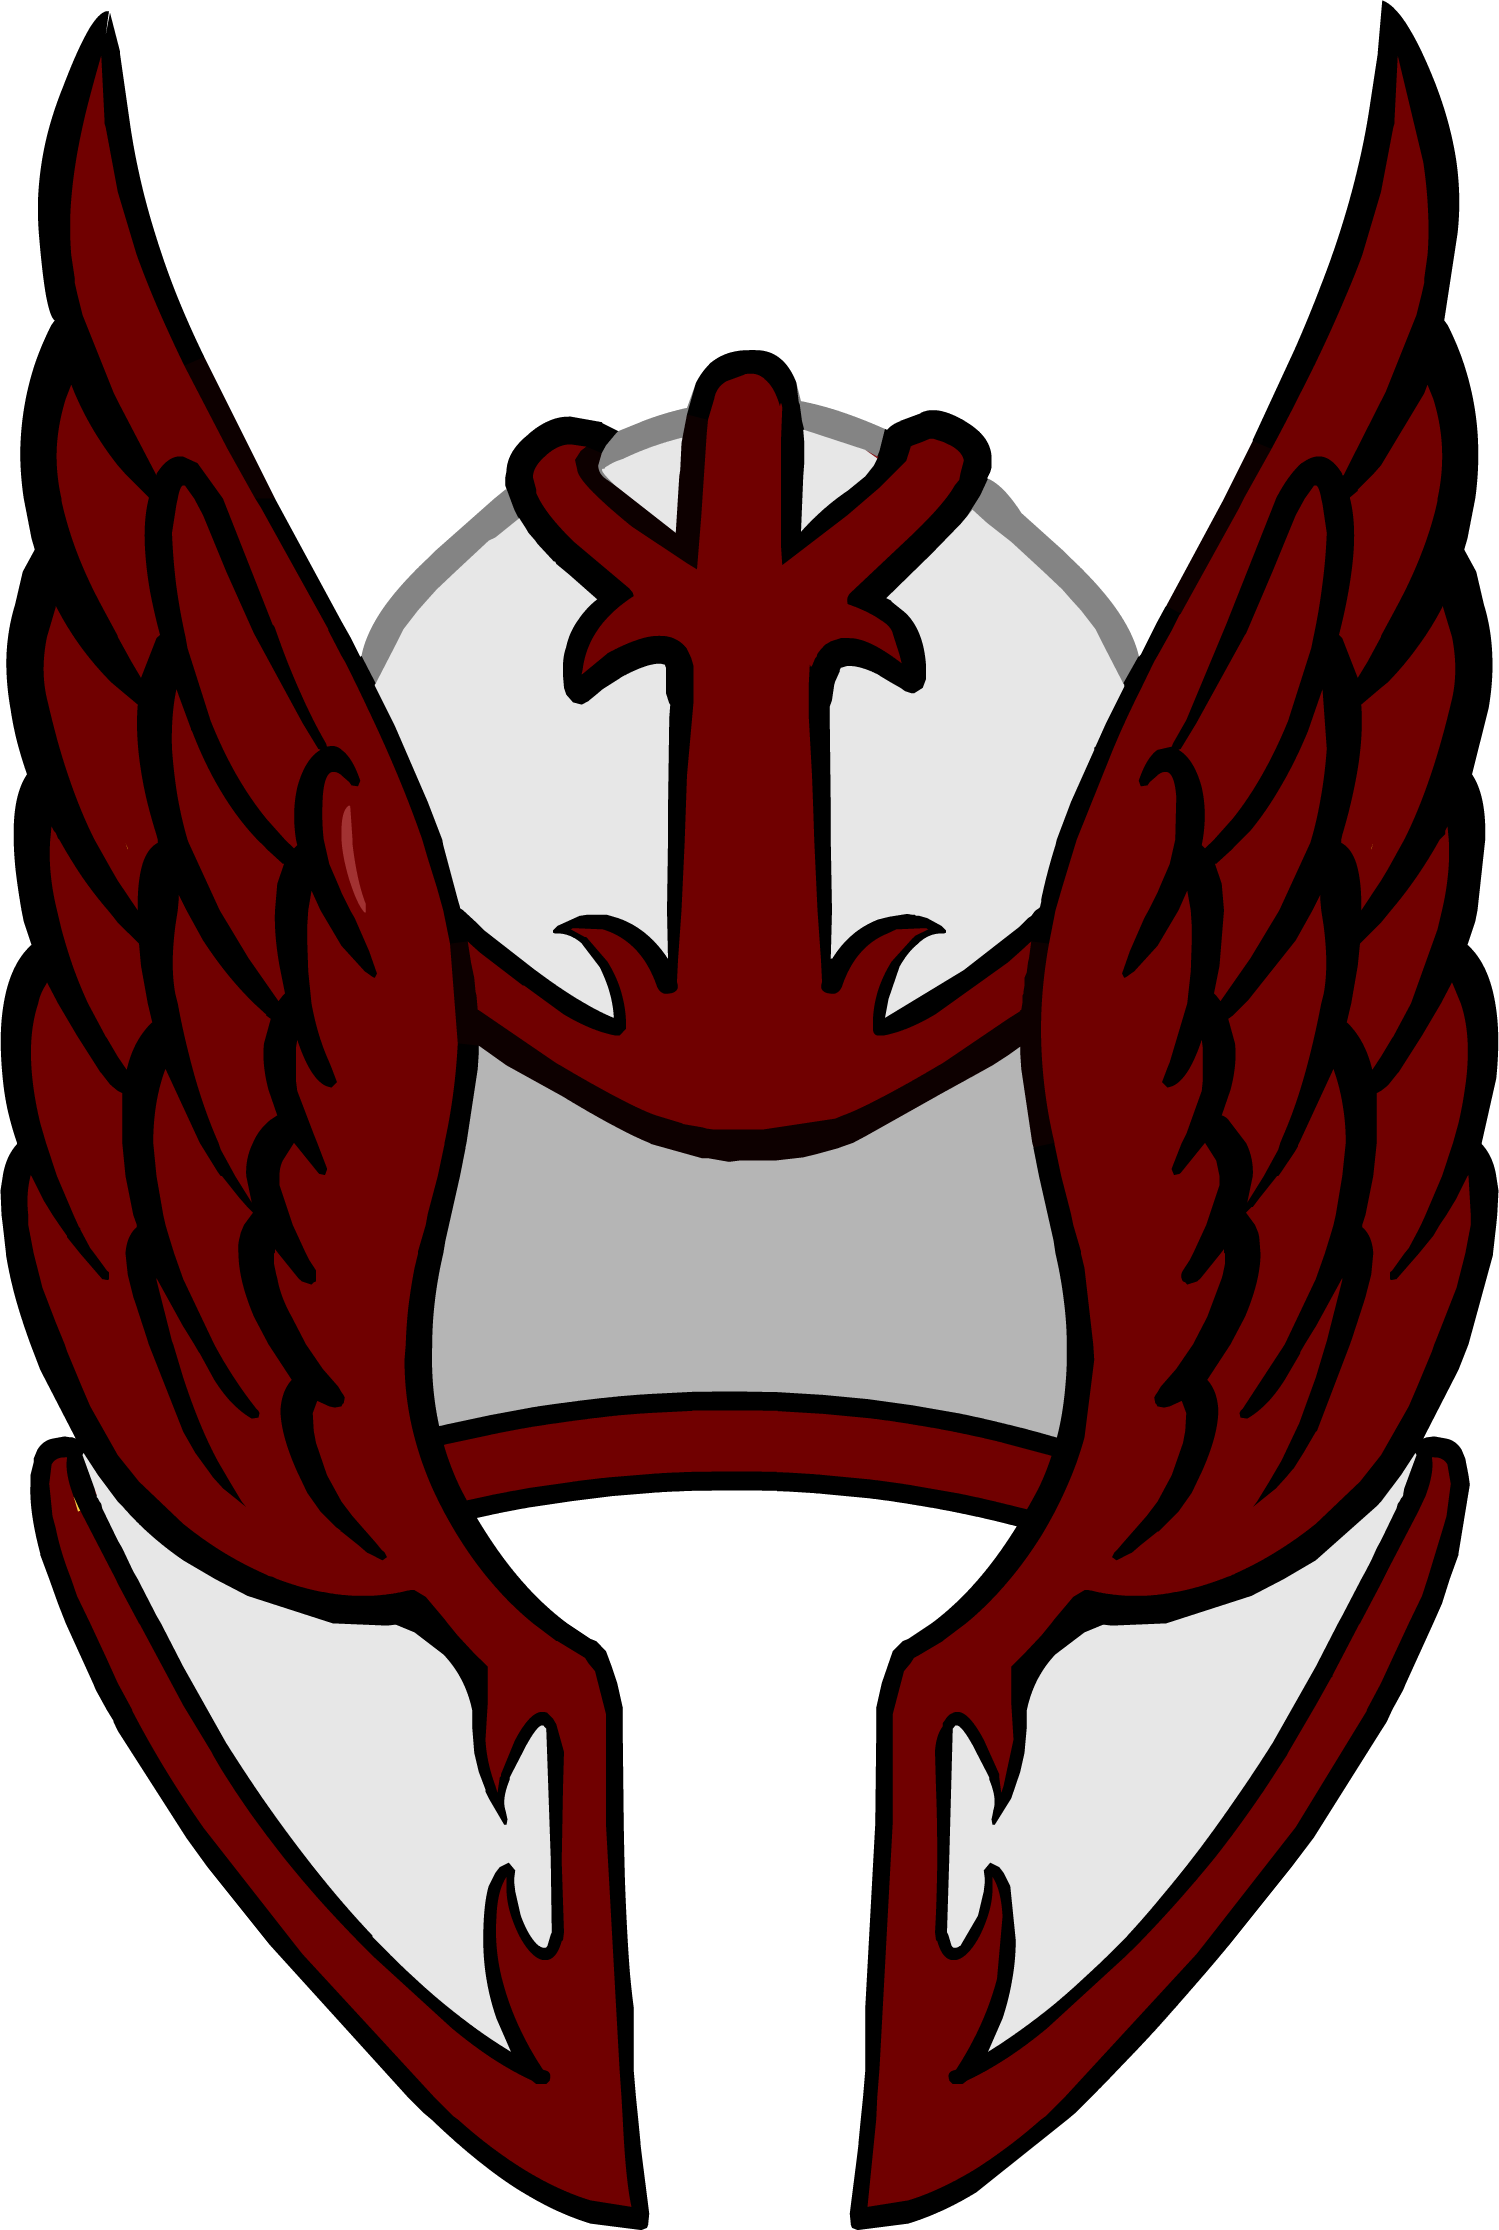 Knights helmet png. Image epic knight icon